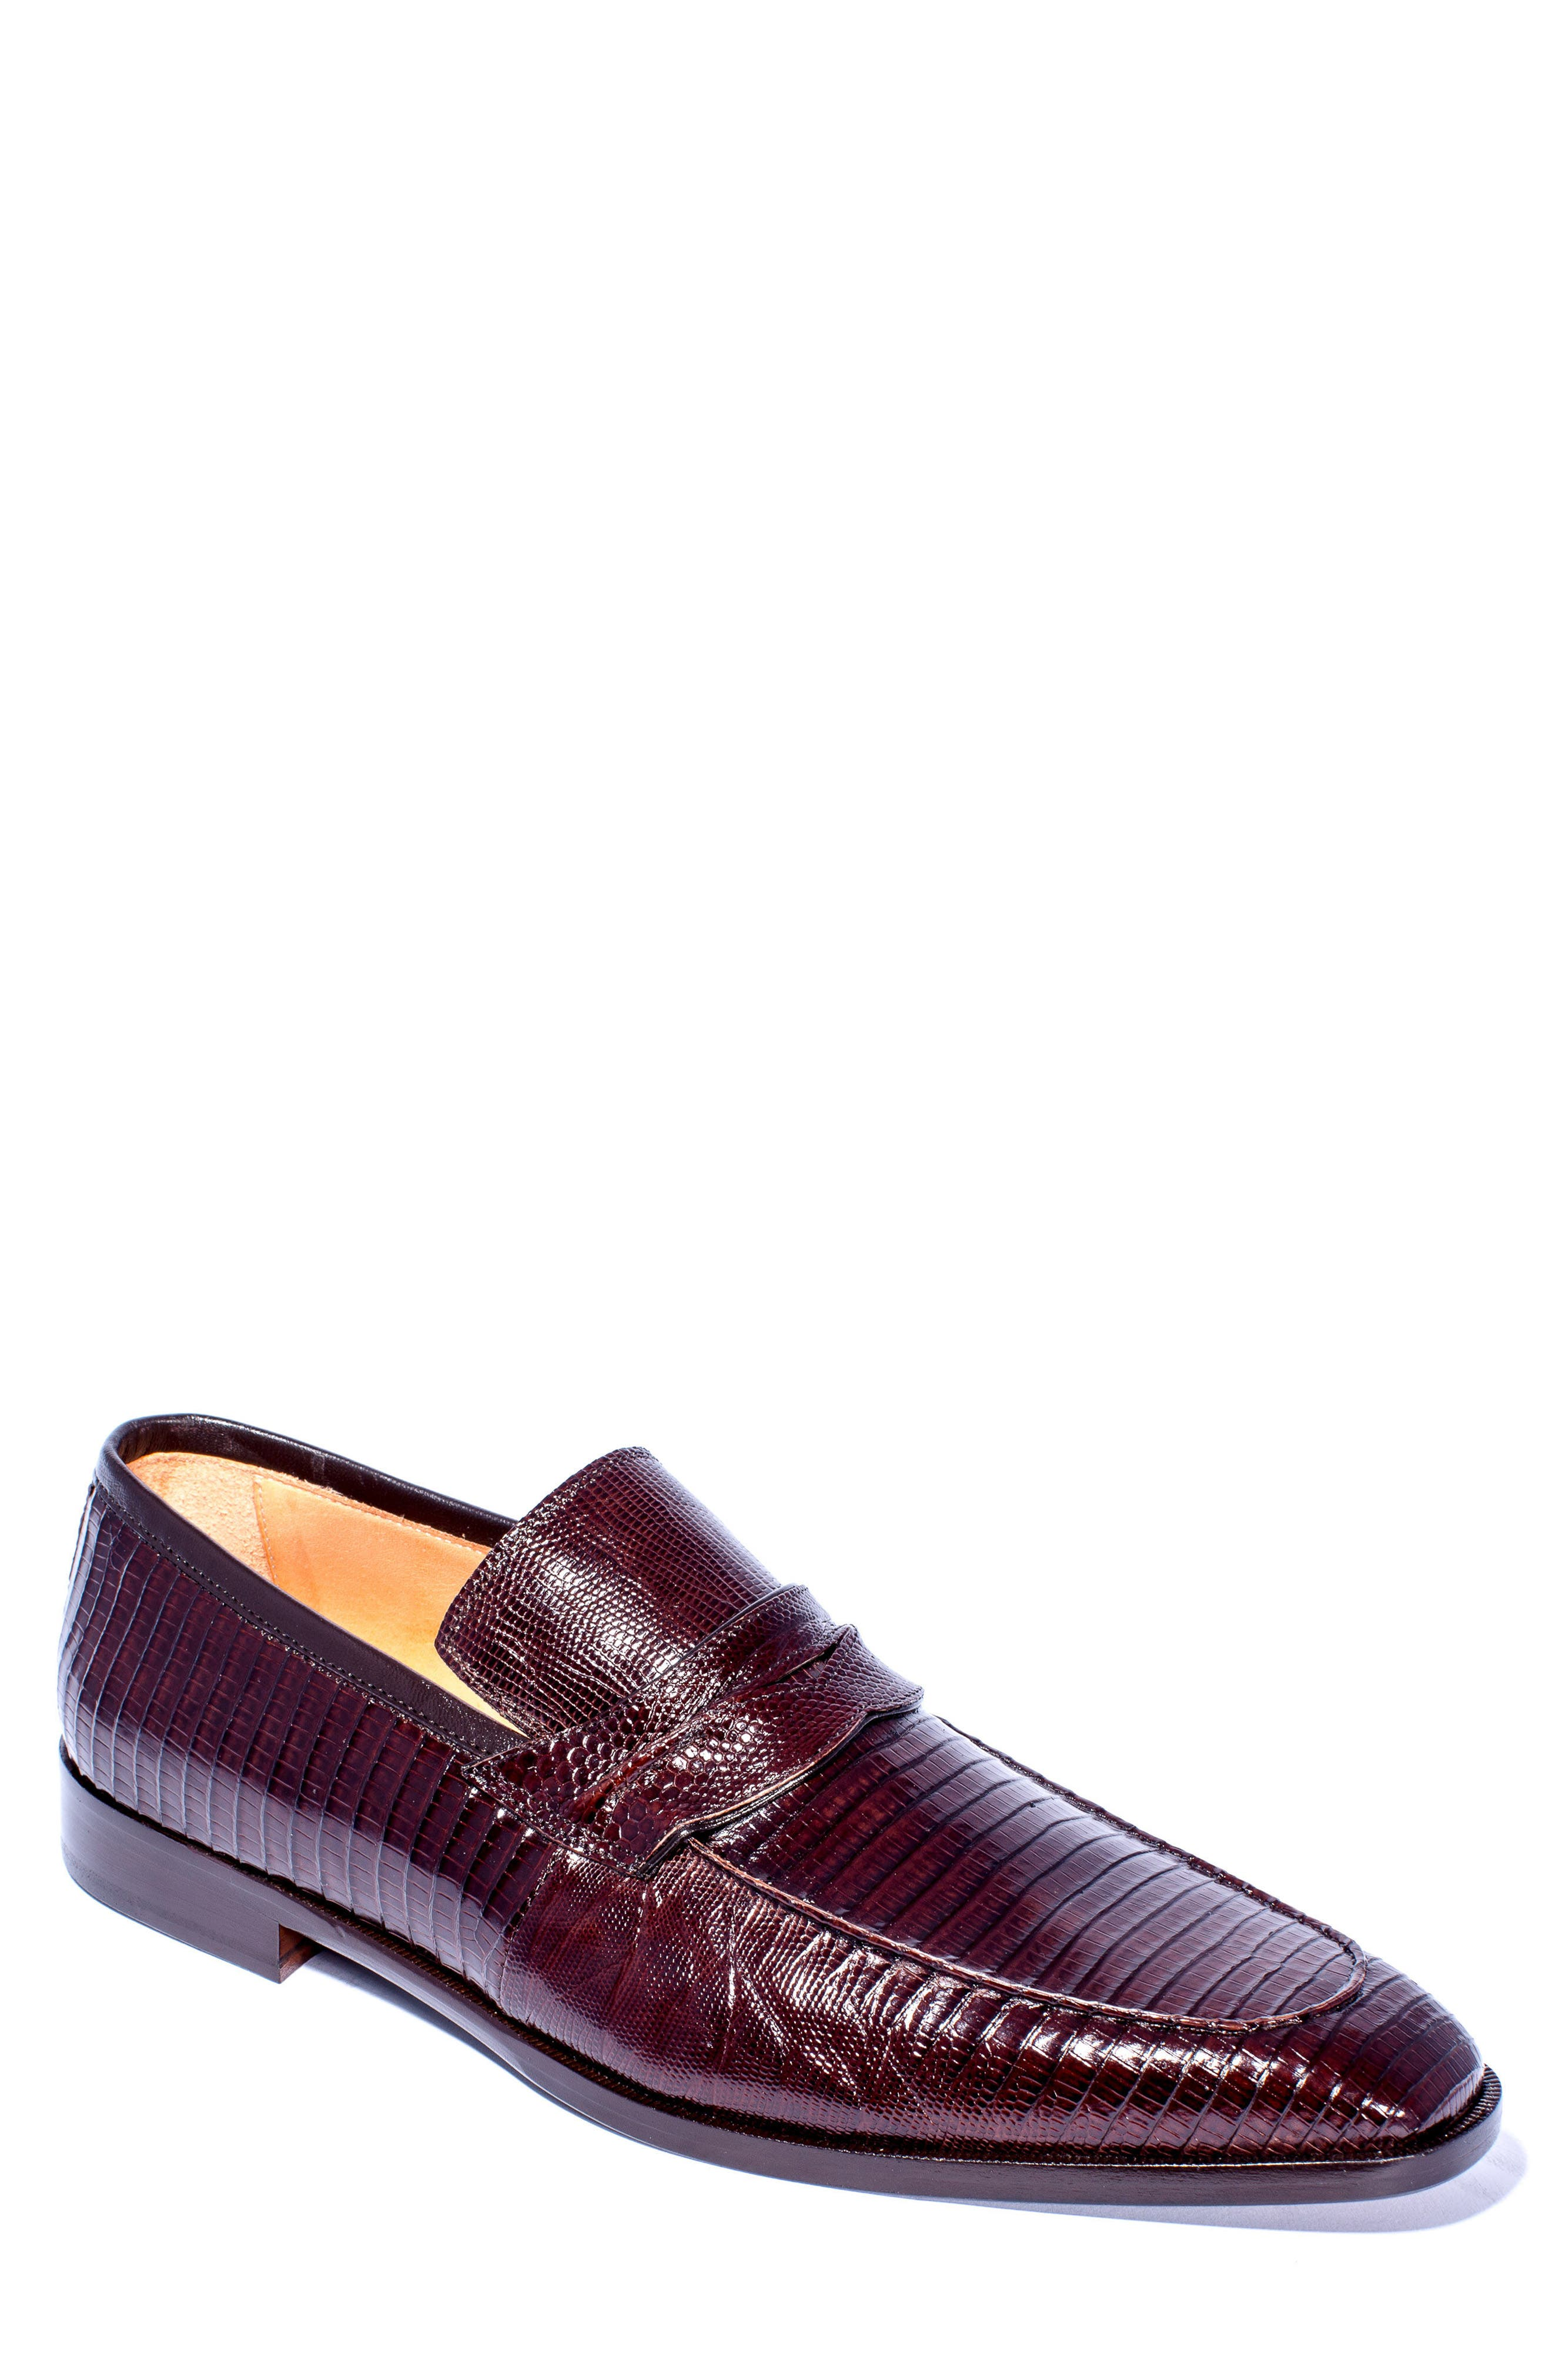 Meo Penny Loafer,                             Main thumbnail 1, color,                             201